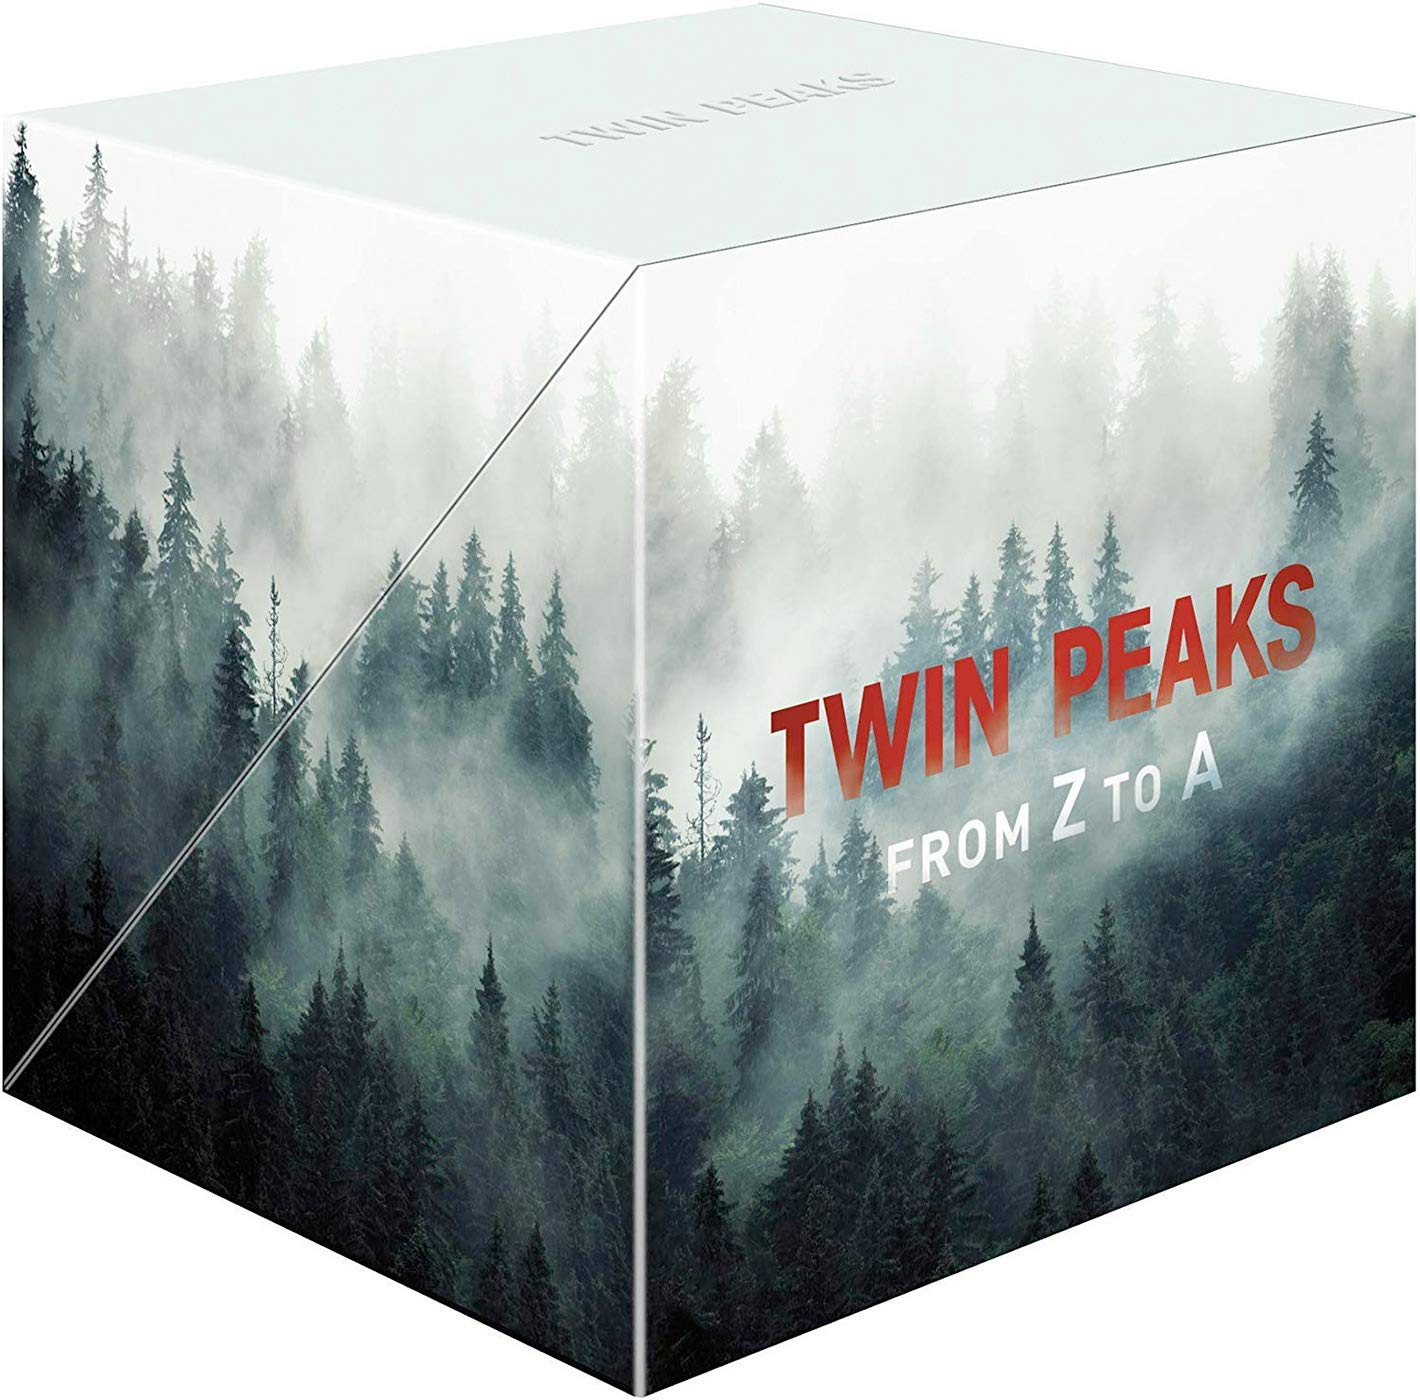 Twin Peaks: From Z to A (Edición Limitada) [Blu-ray]